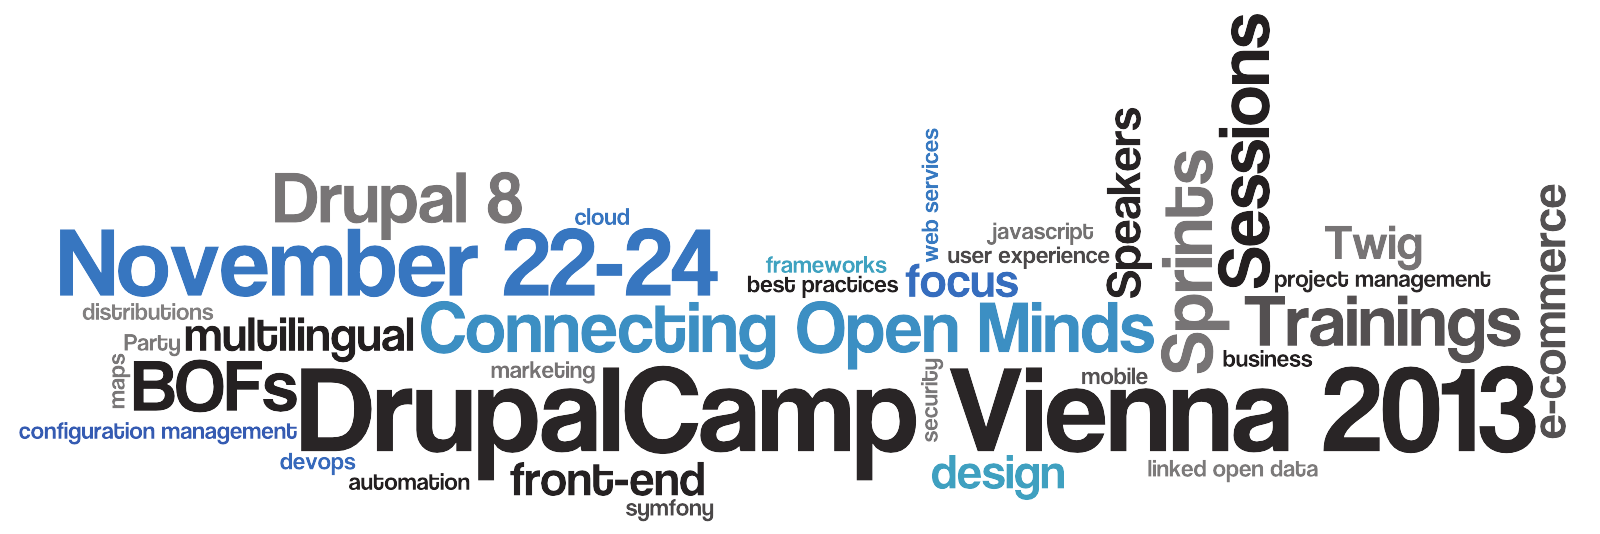 drupalcamp_vienna_2013_word_cloud.png